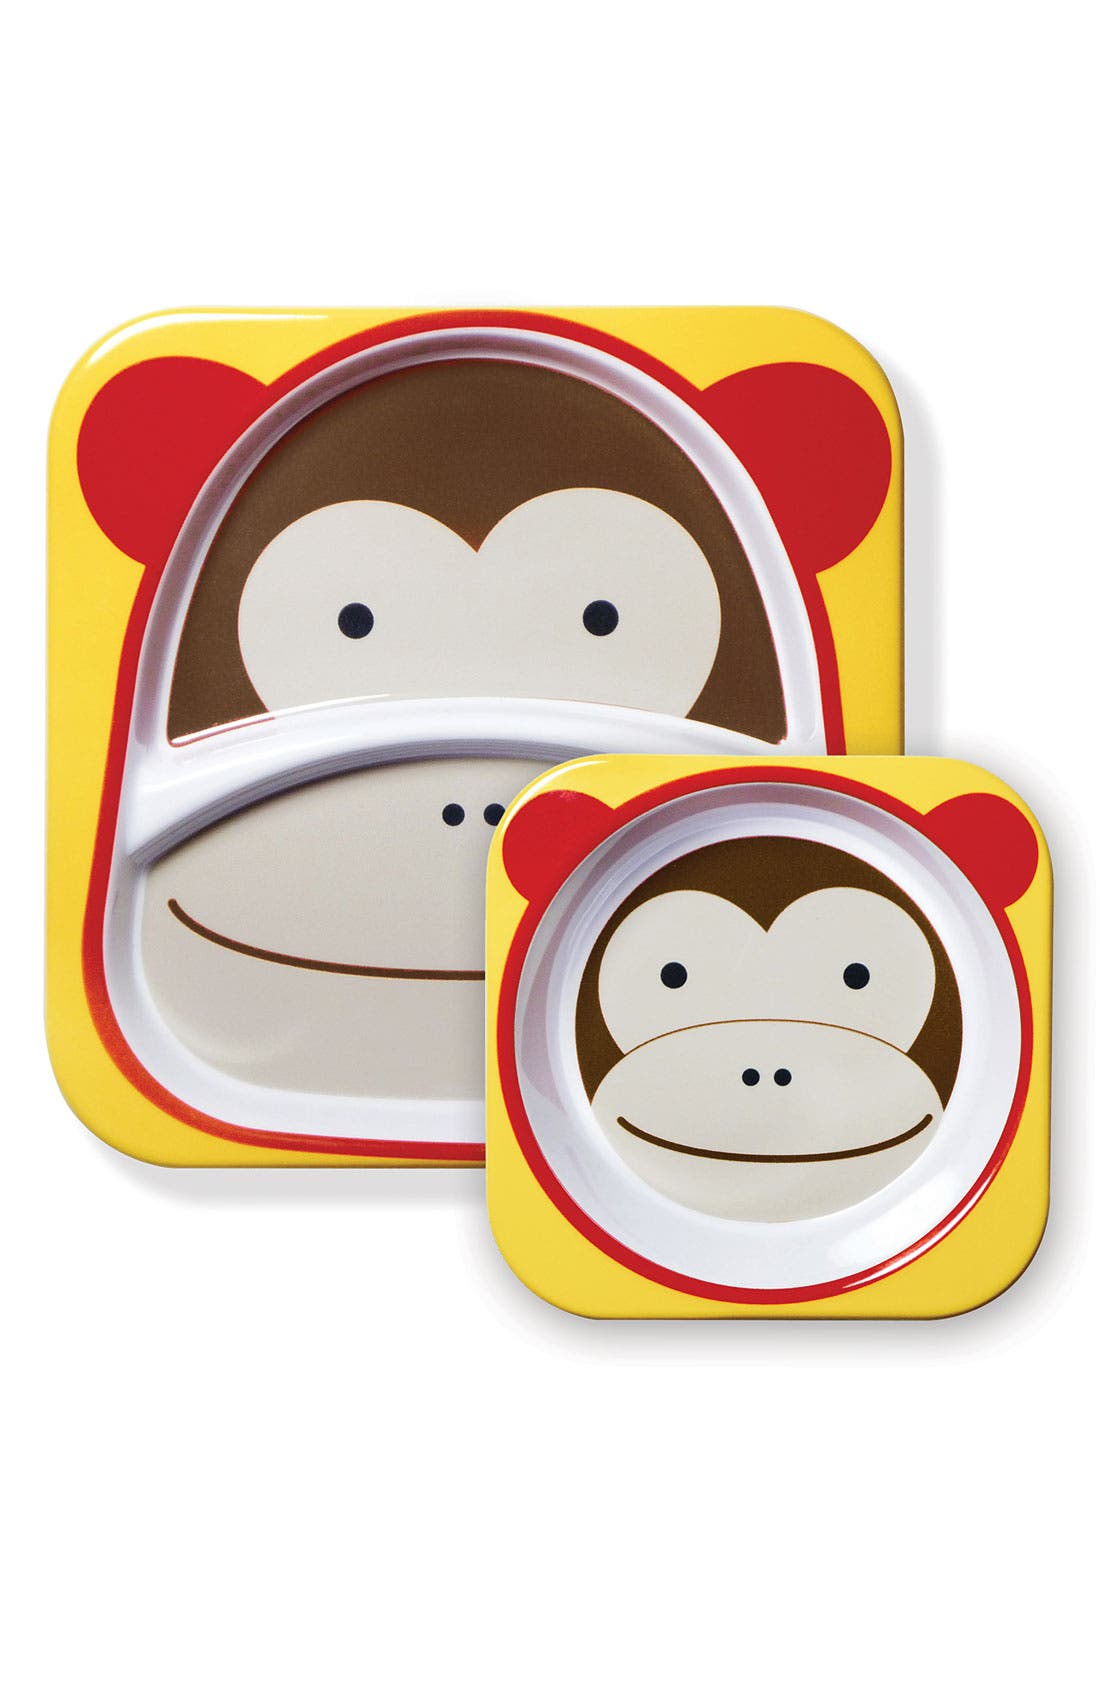 'Zoo' Meal Time Set,                         Main,                         color, 200